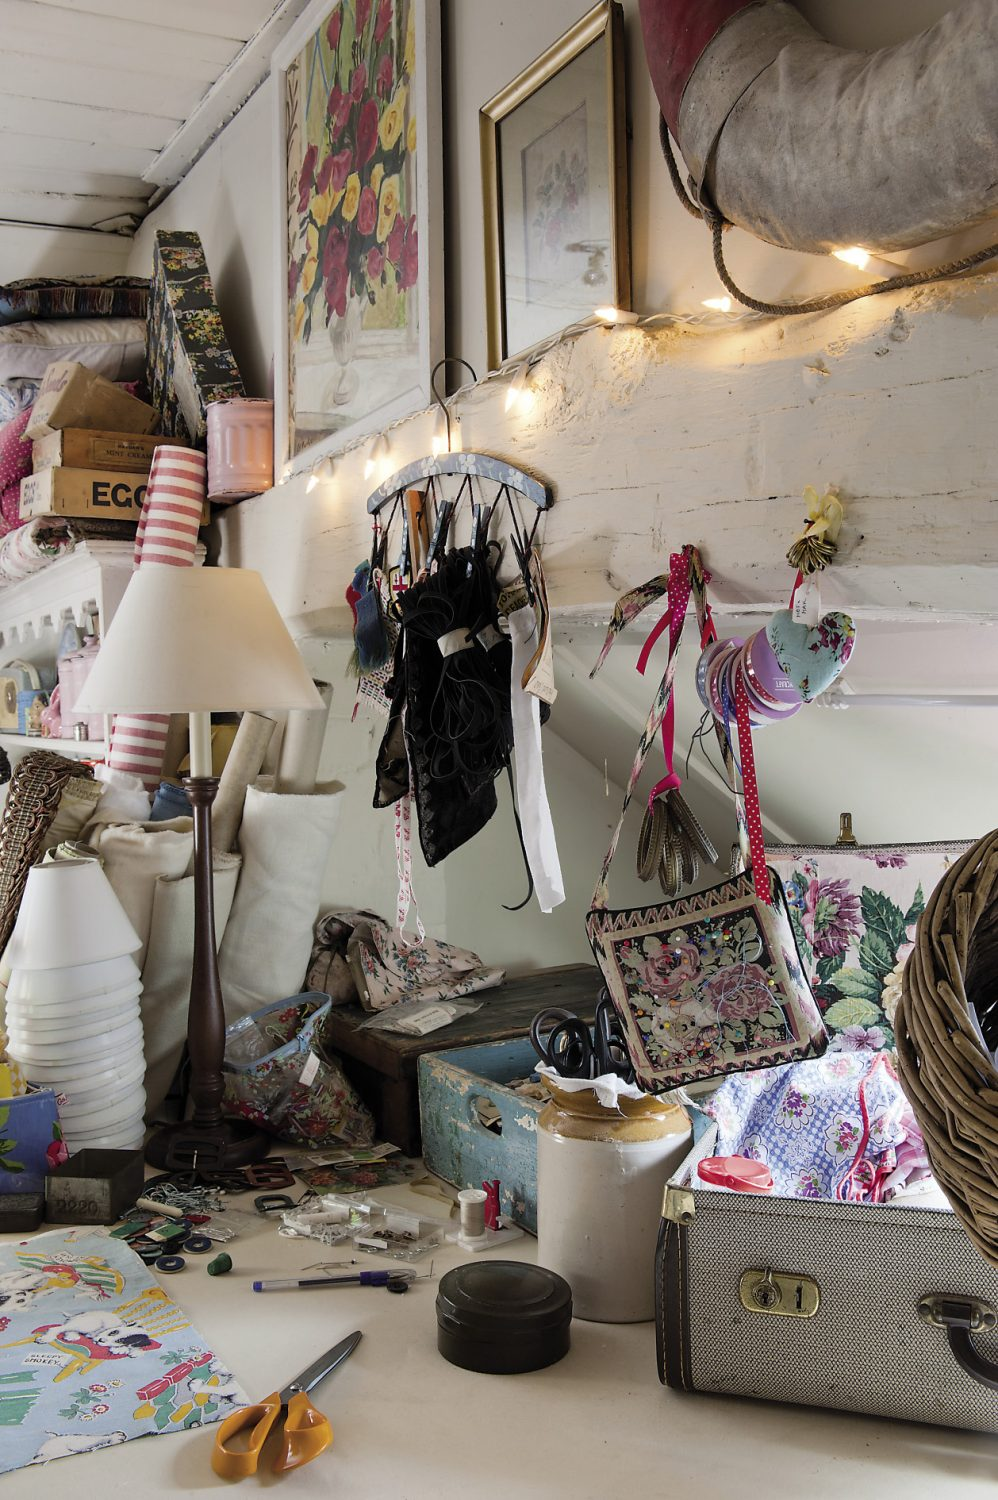 Madeline's workroom is artfully packed with cushions and fabrics, ribbons and buttons, irons and ironing boards